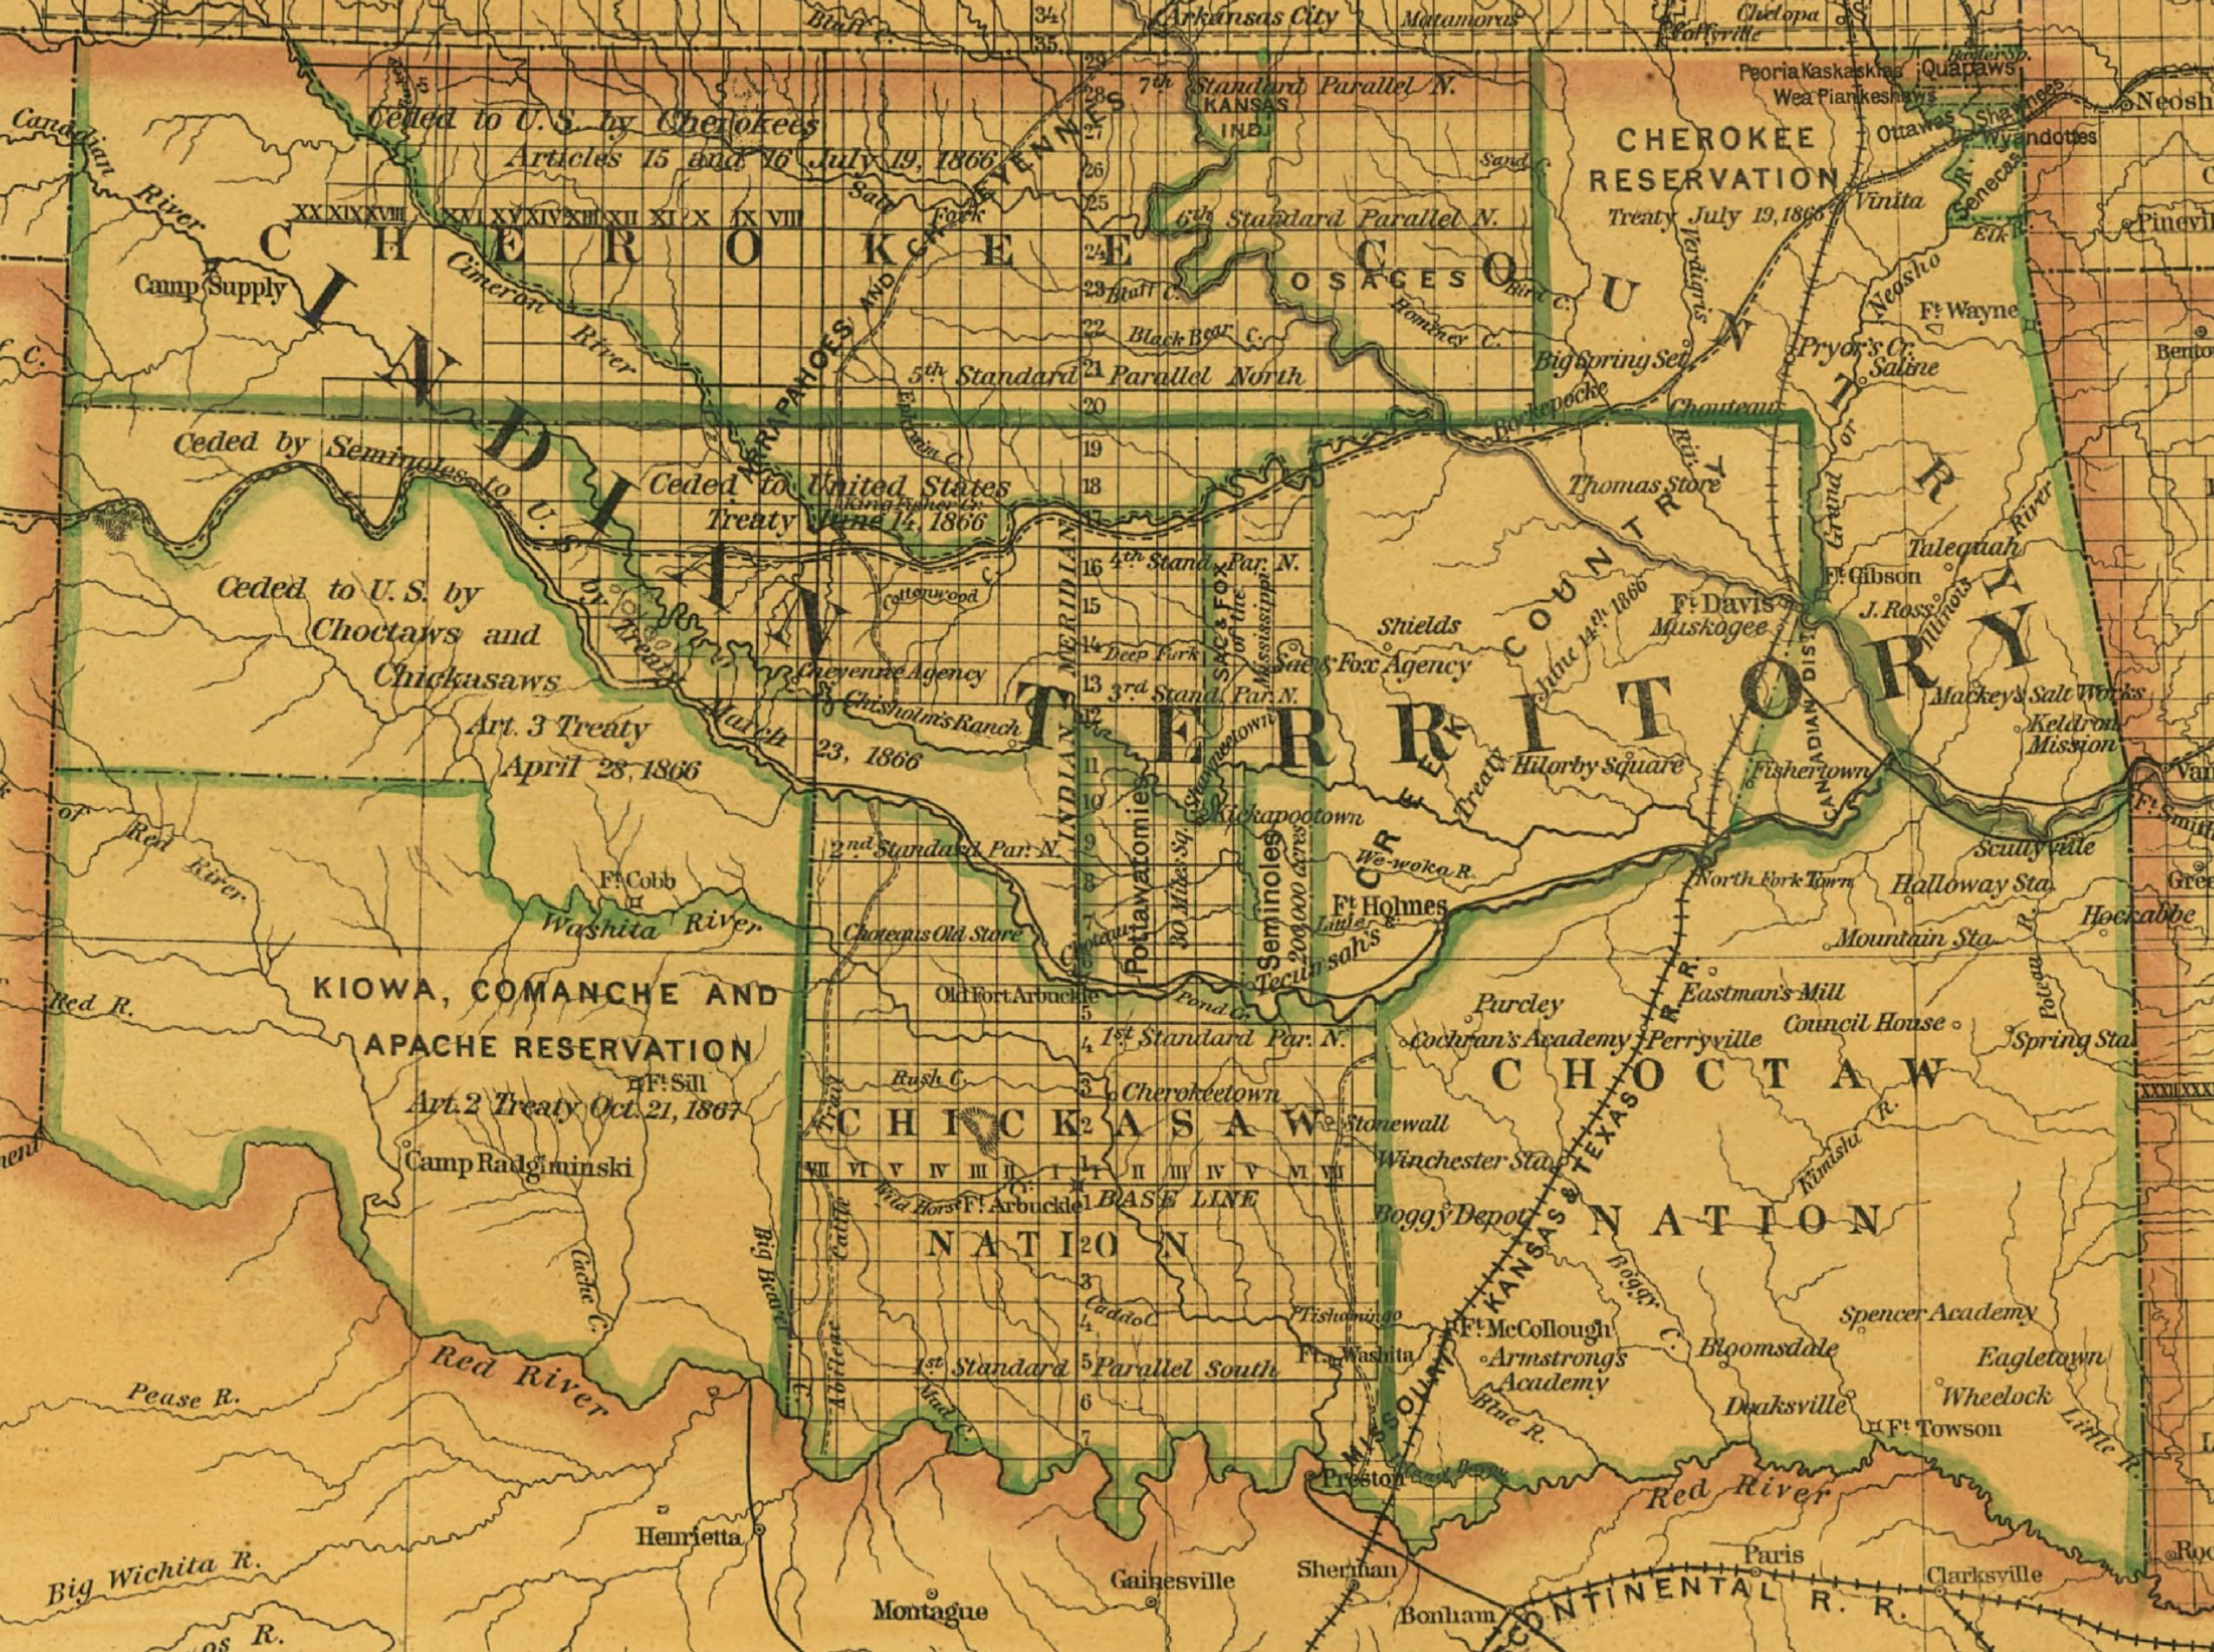 Map Of The Glover River Oklahoma Travel Pinterest Rivers - Oklahoma rivers map